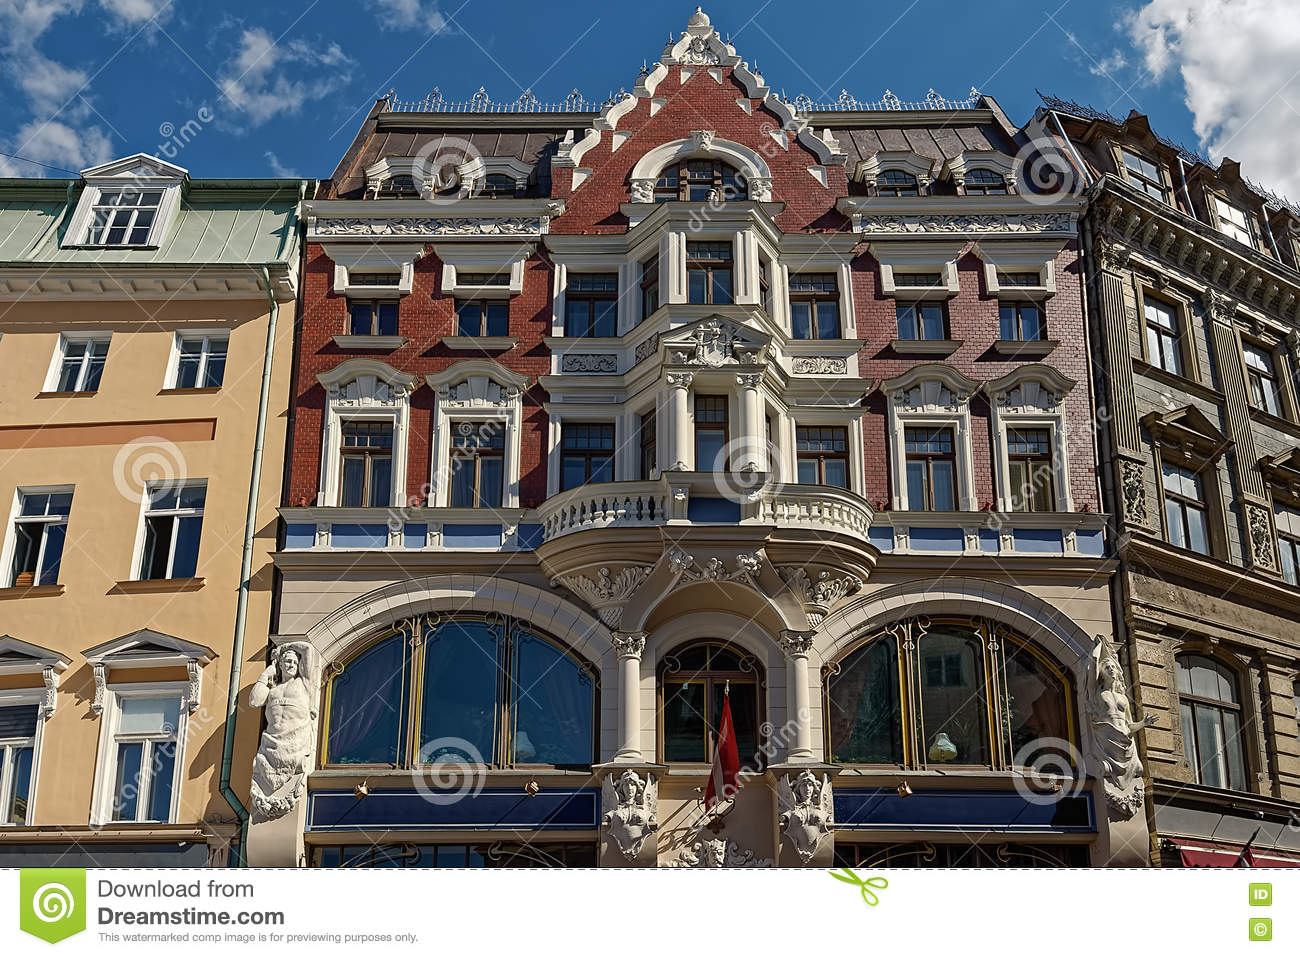 Jugendstil architektur stockfoto bild 71415524 for Architektur jugendstil